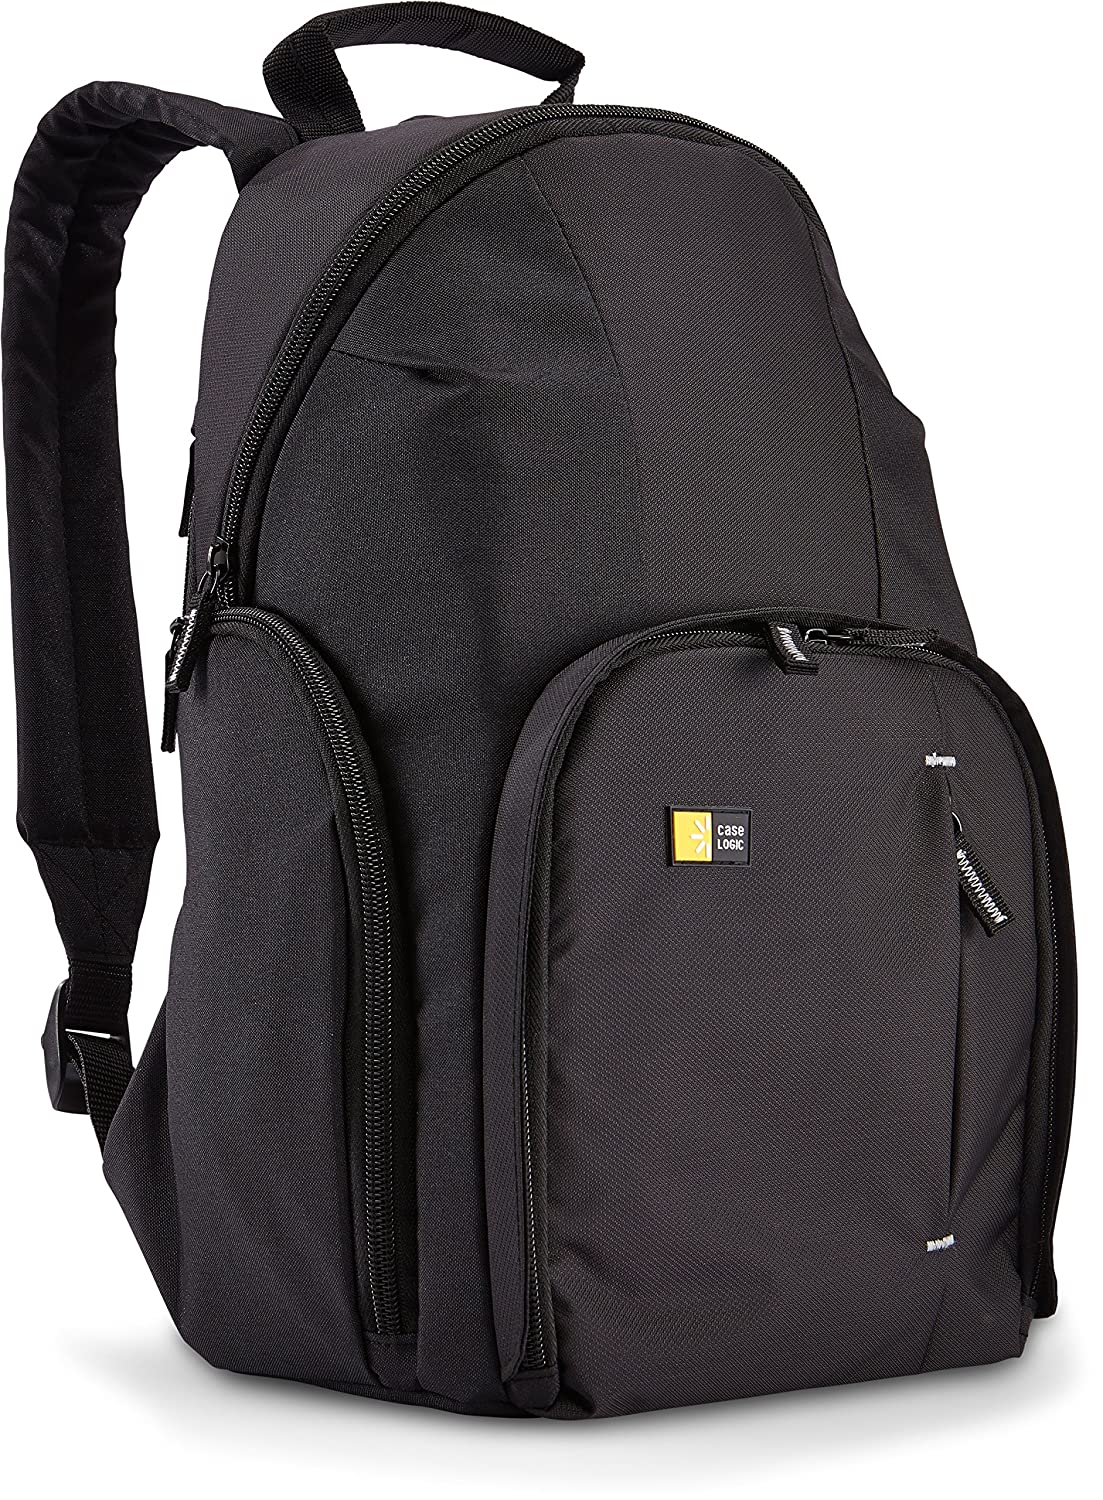 Case Logic TBC411 Backpack for DSLR Camera - Black